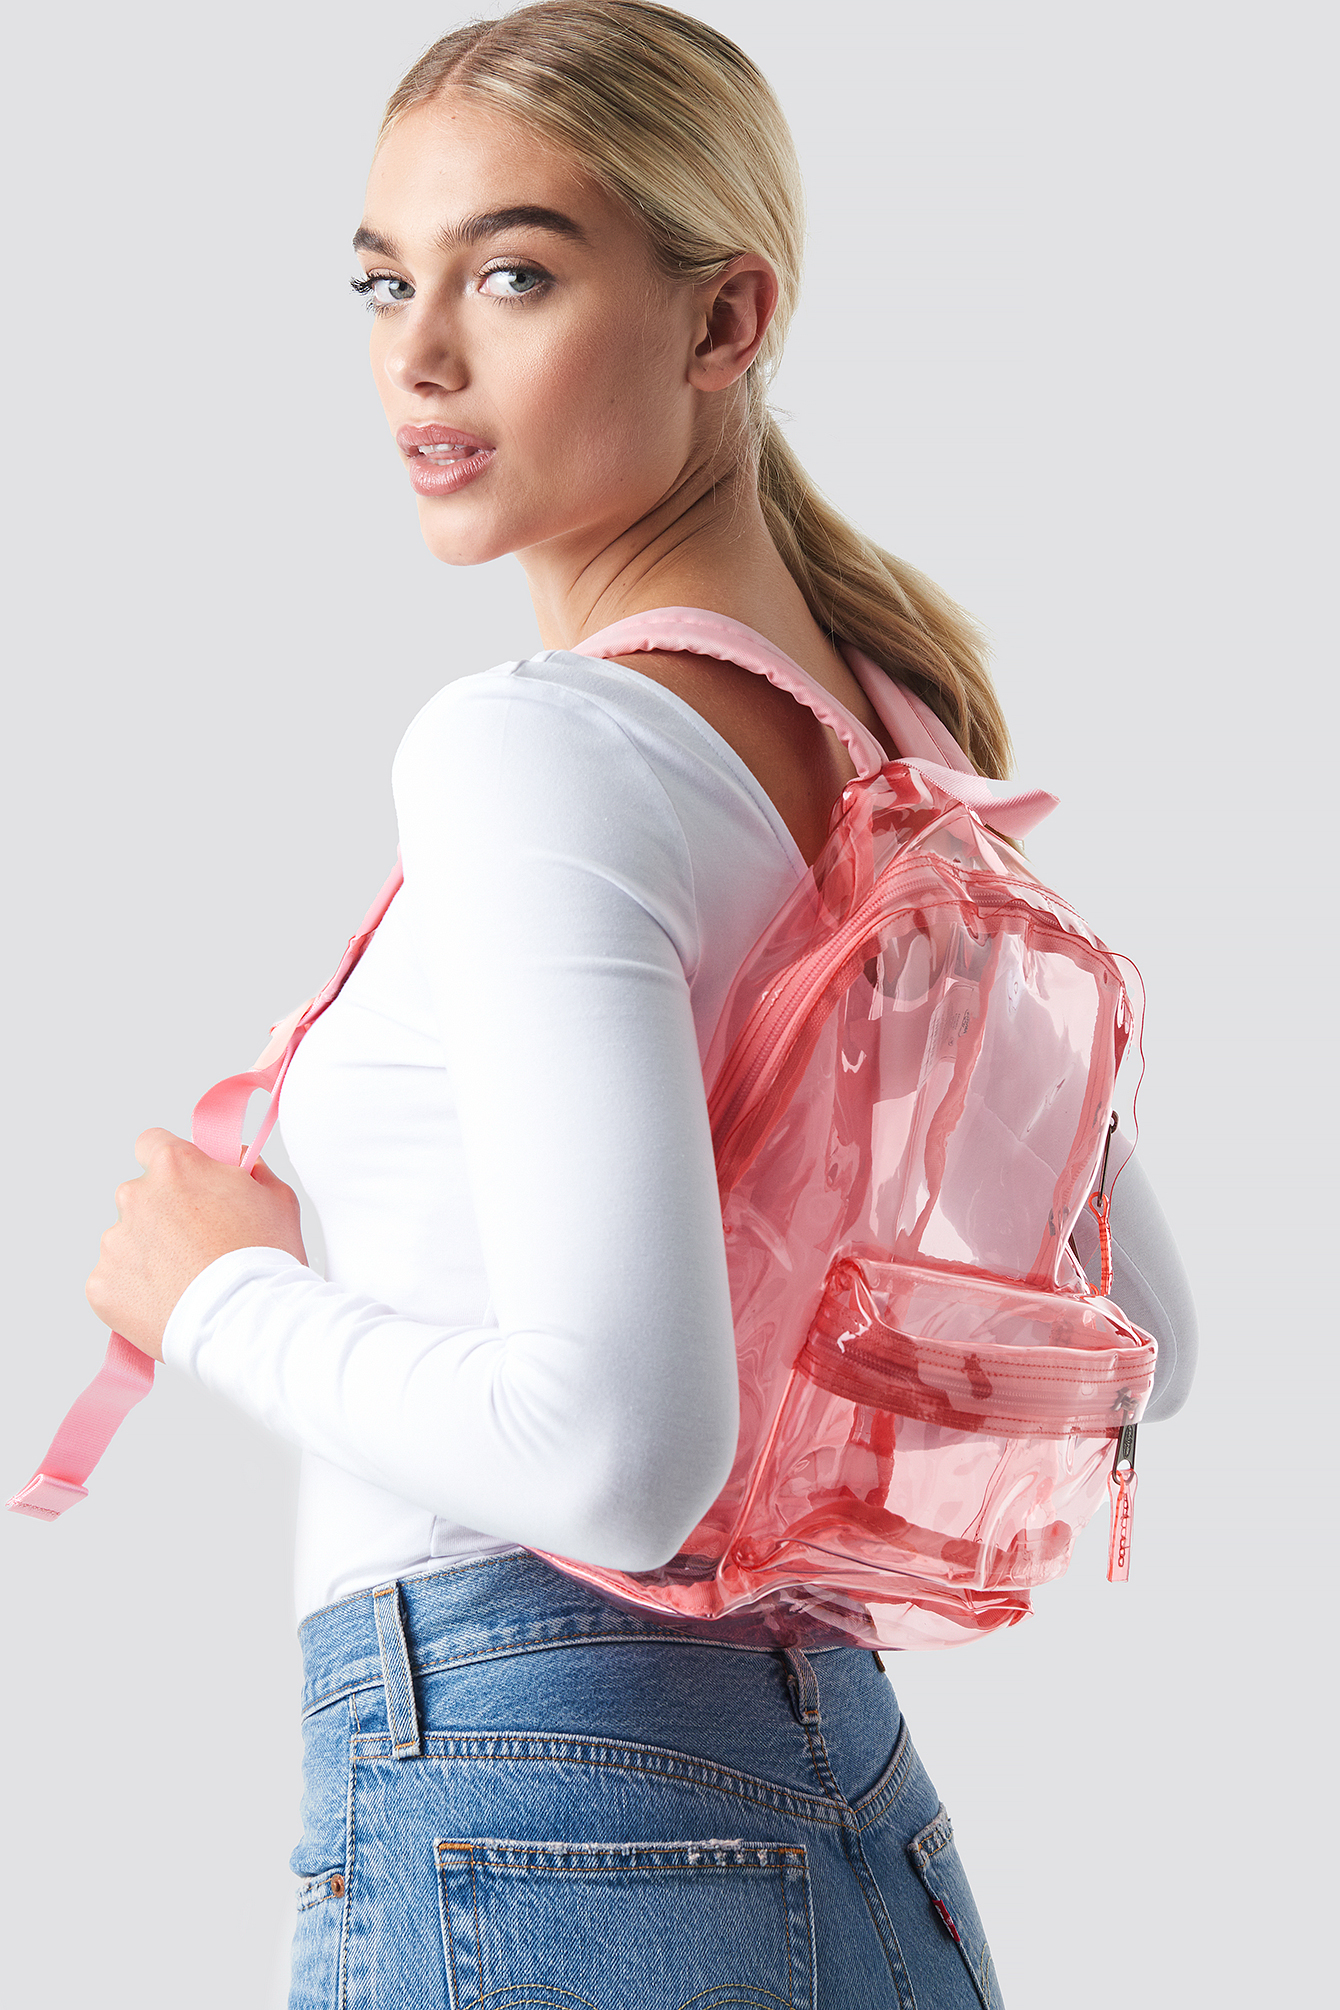 eastpak -  Orbit Bag - Pink